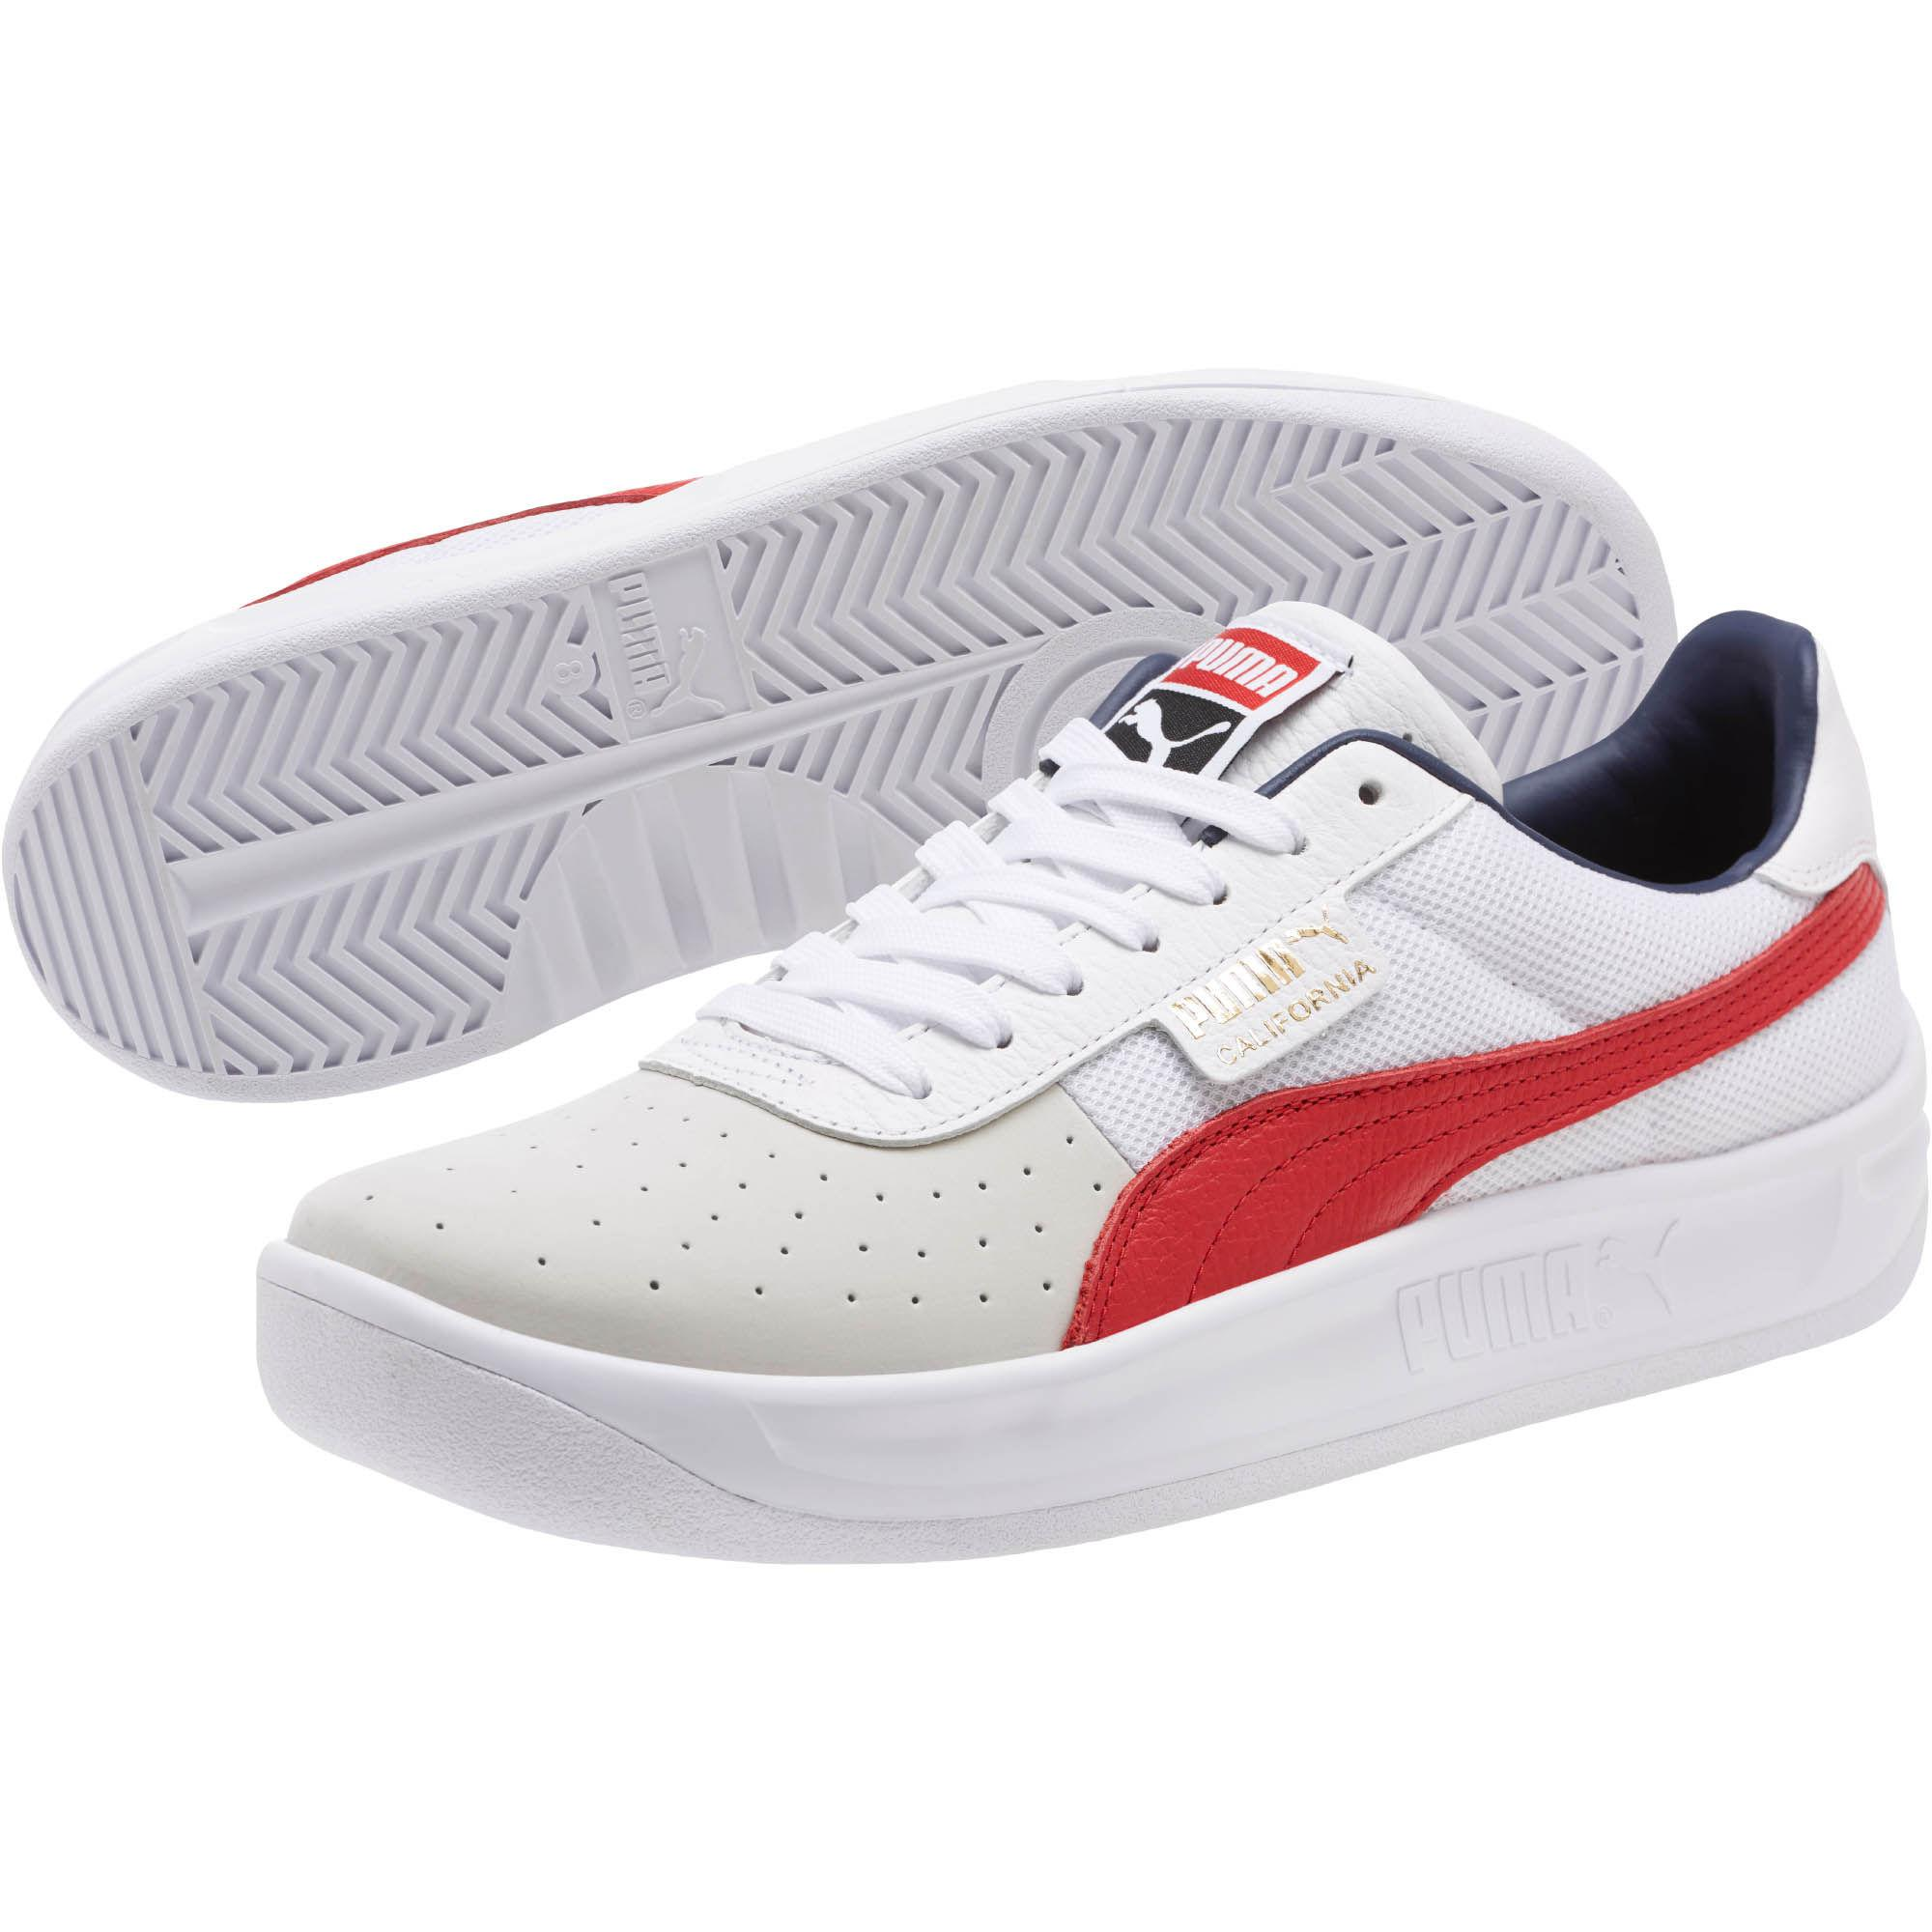 816c8a09ad5d PUMA - White California Casual Sneakers for Men - Lyst. View fullscreen